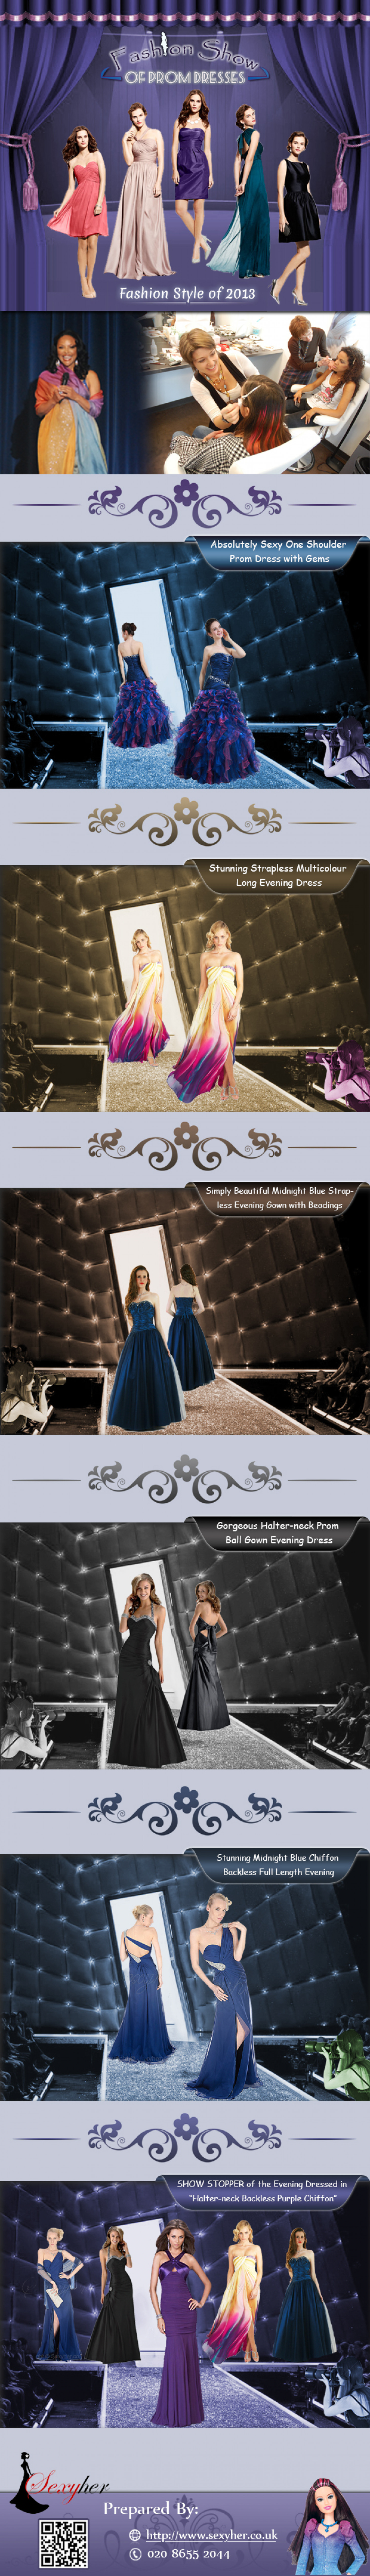 Fashion Show of Prom Dresses Infographic